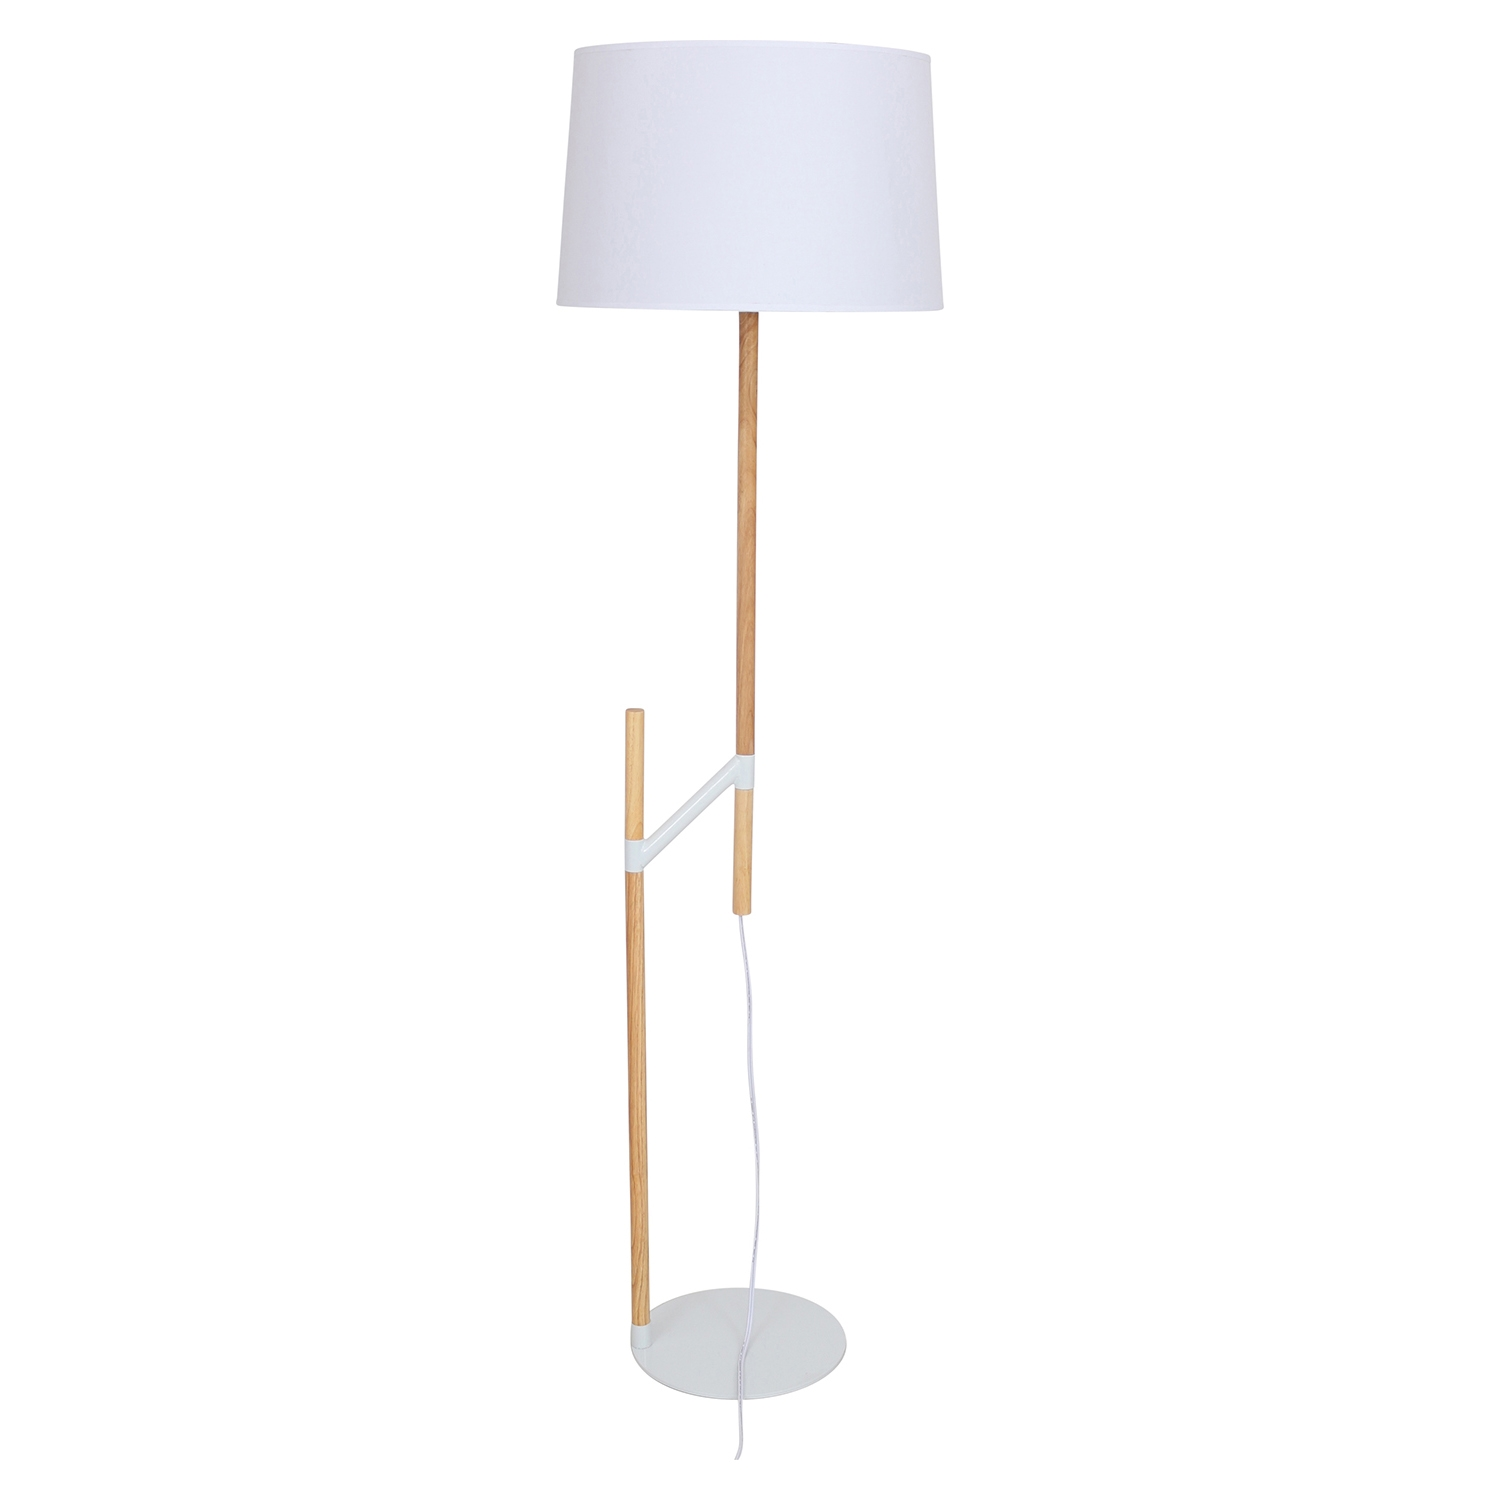 Raised Floor Lamp - Medium Brown, White